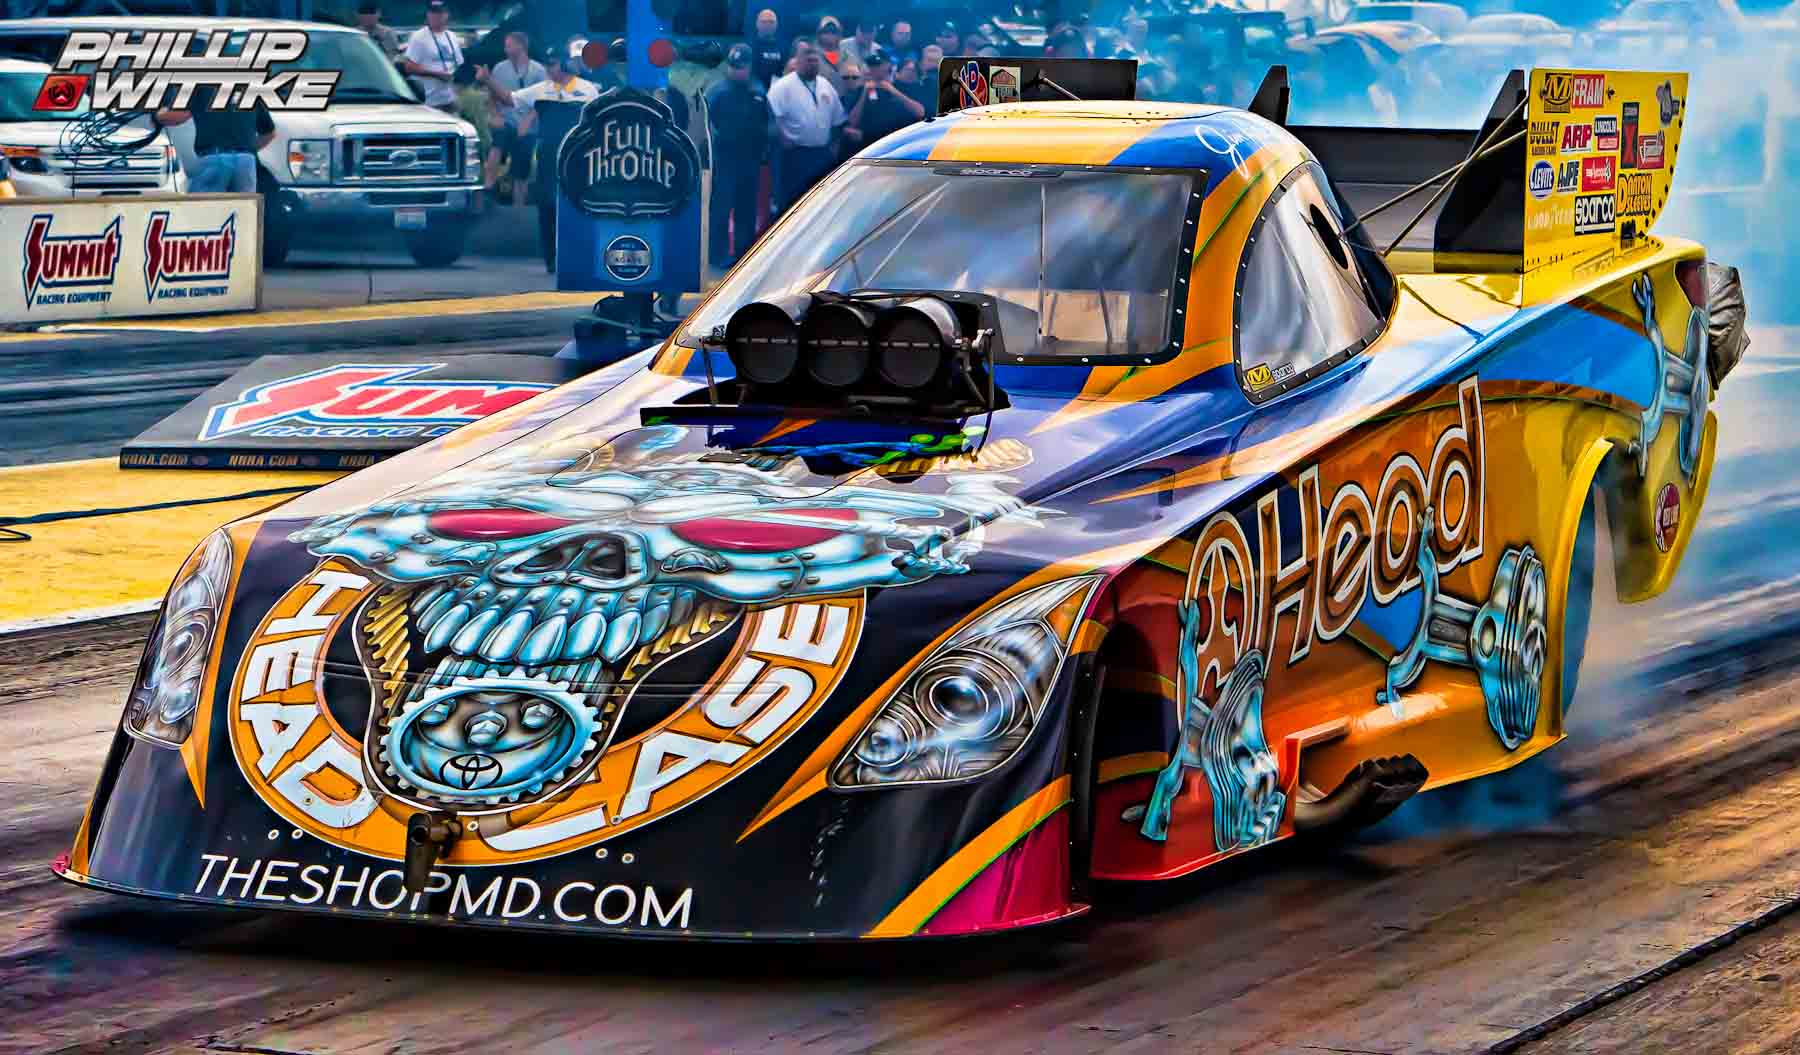 136 likewise Mad Max Inspired Hot Rod Formula 1 Bolid 1932 Ford 3 Window Coupe as well Cakes 01 also 2466739 furthermore Custom Race Shirts. on cool nascar designs